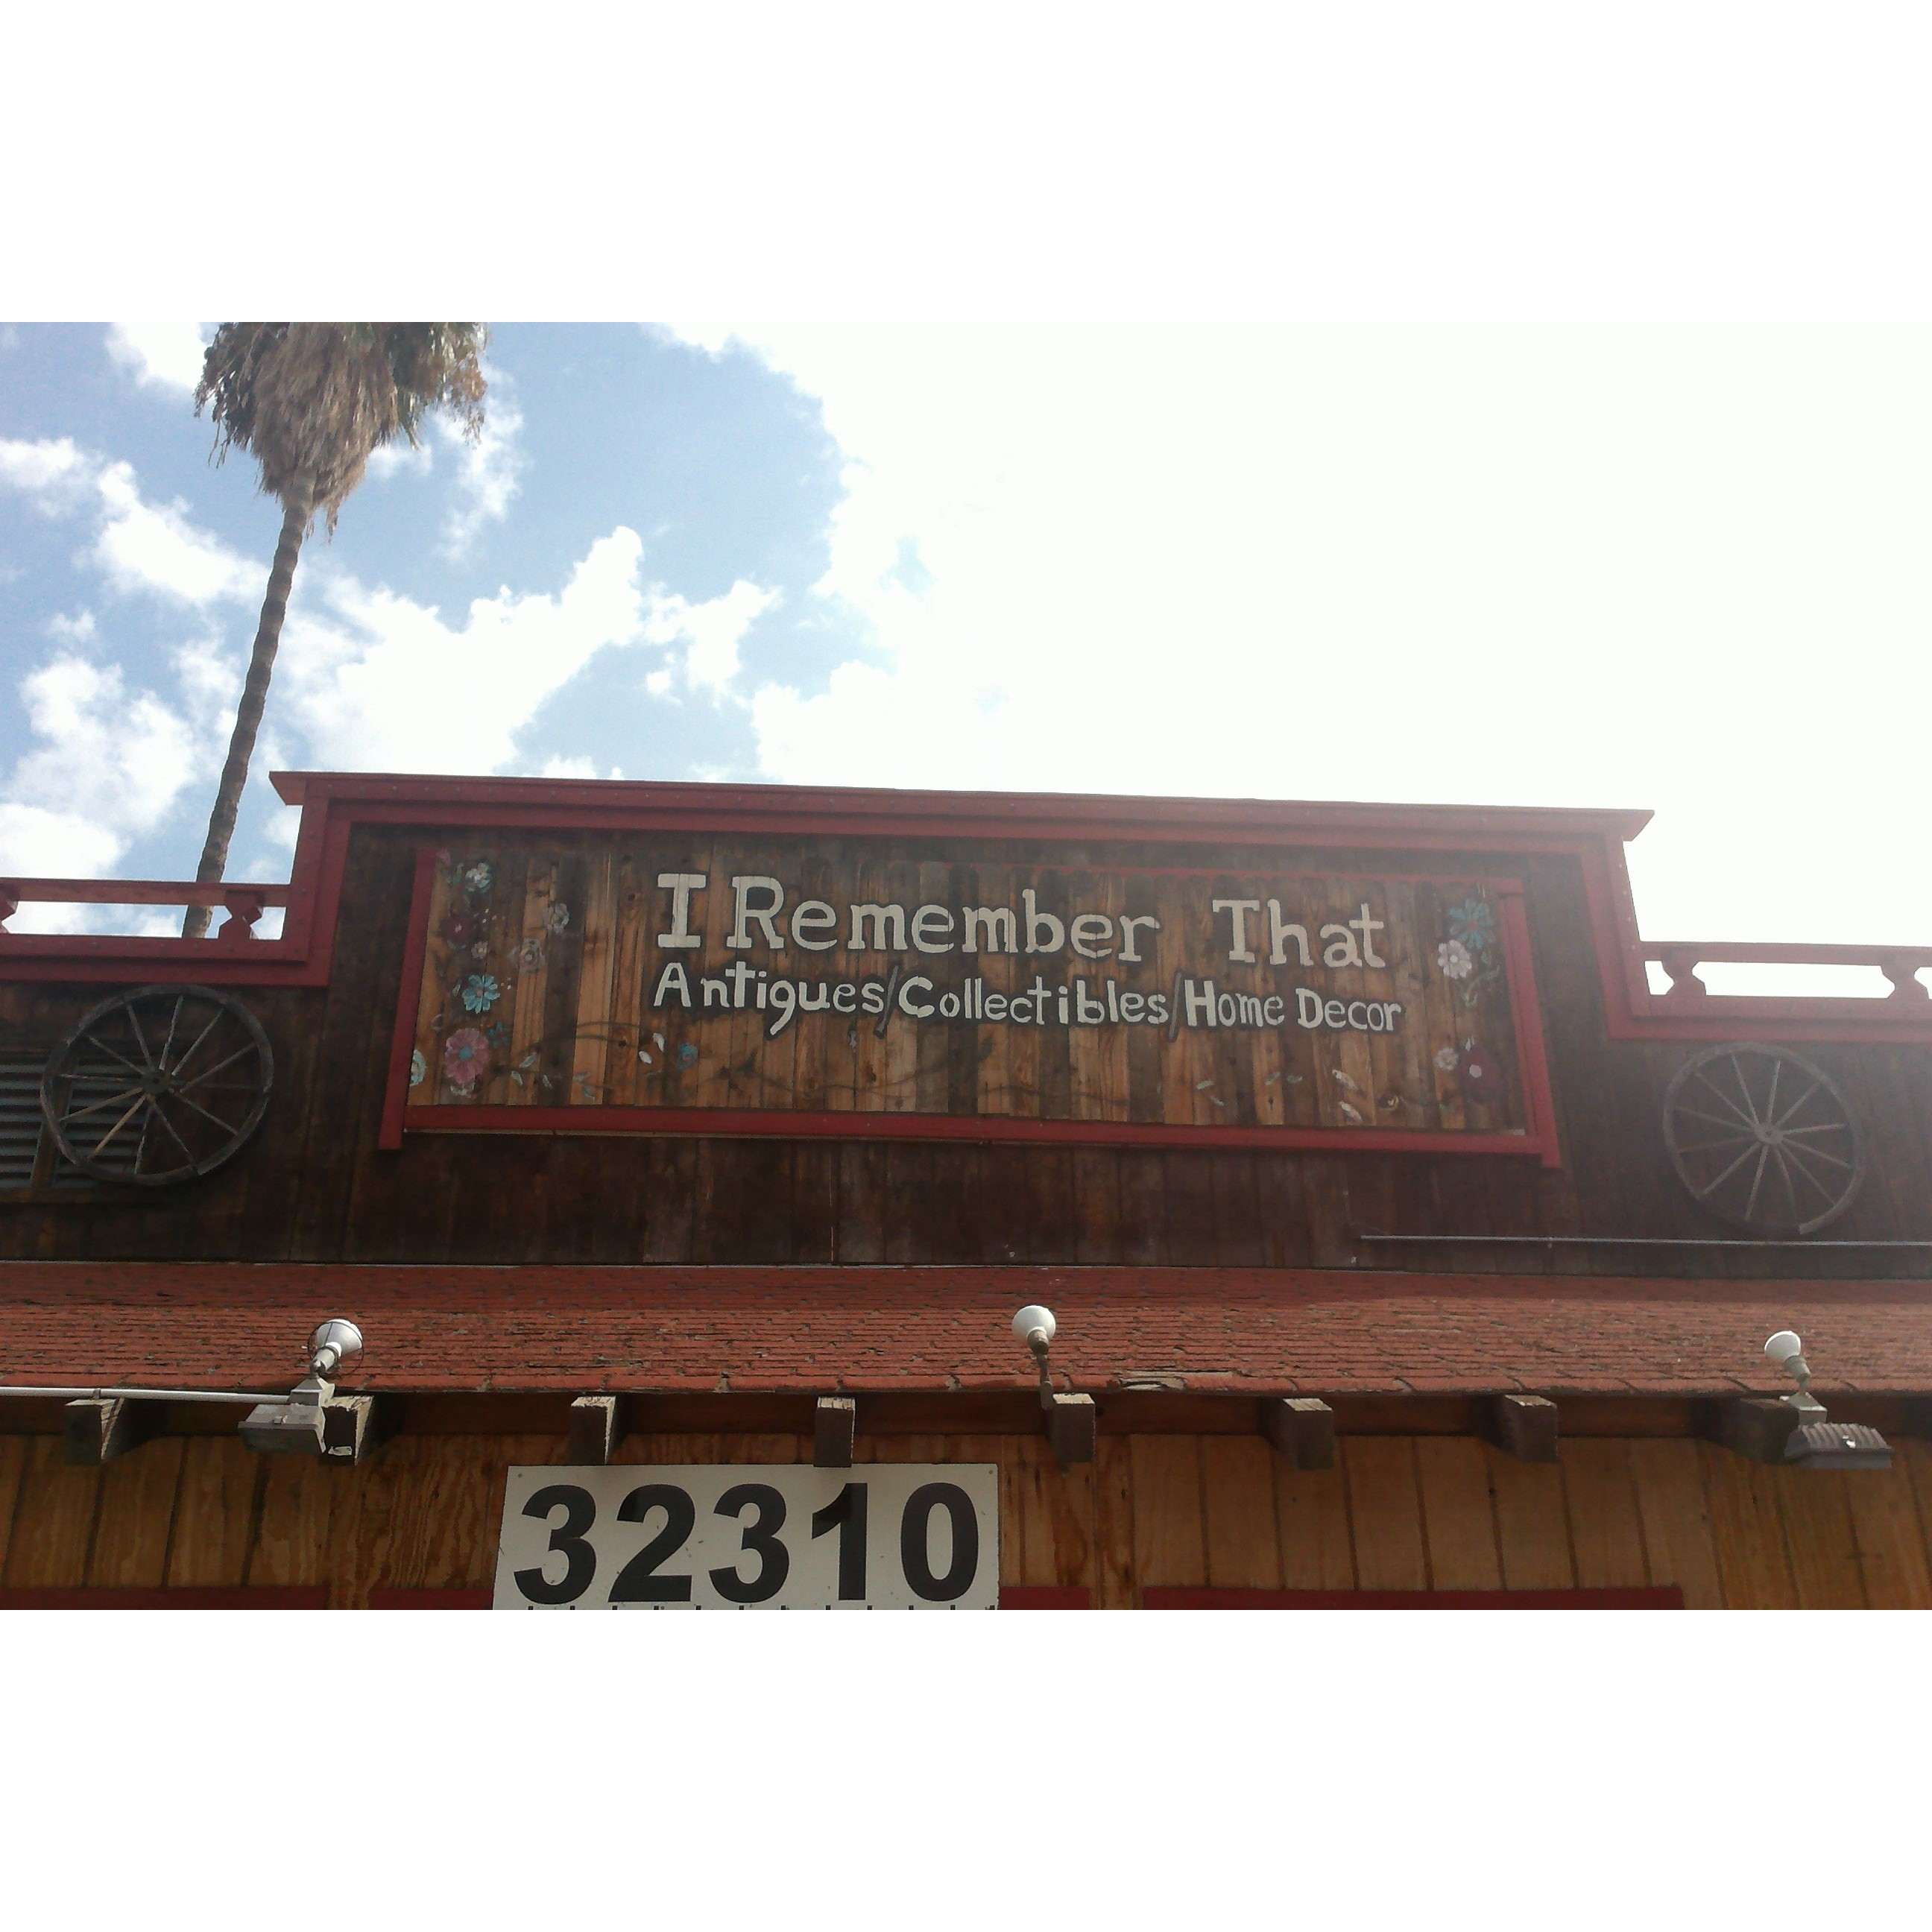 """I Remember That """"Antiques And Collectibles"""" - Lake Elsinore, CA 92530 - (337)321-1584 